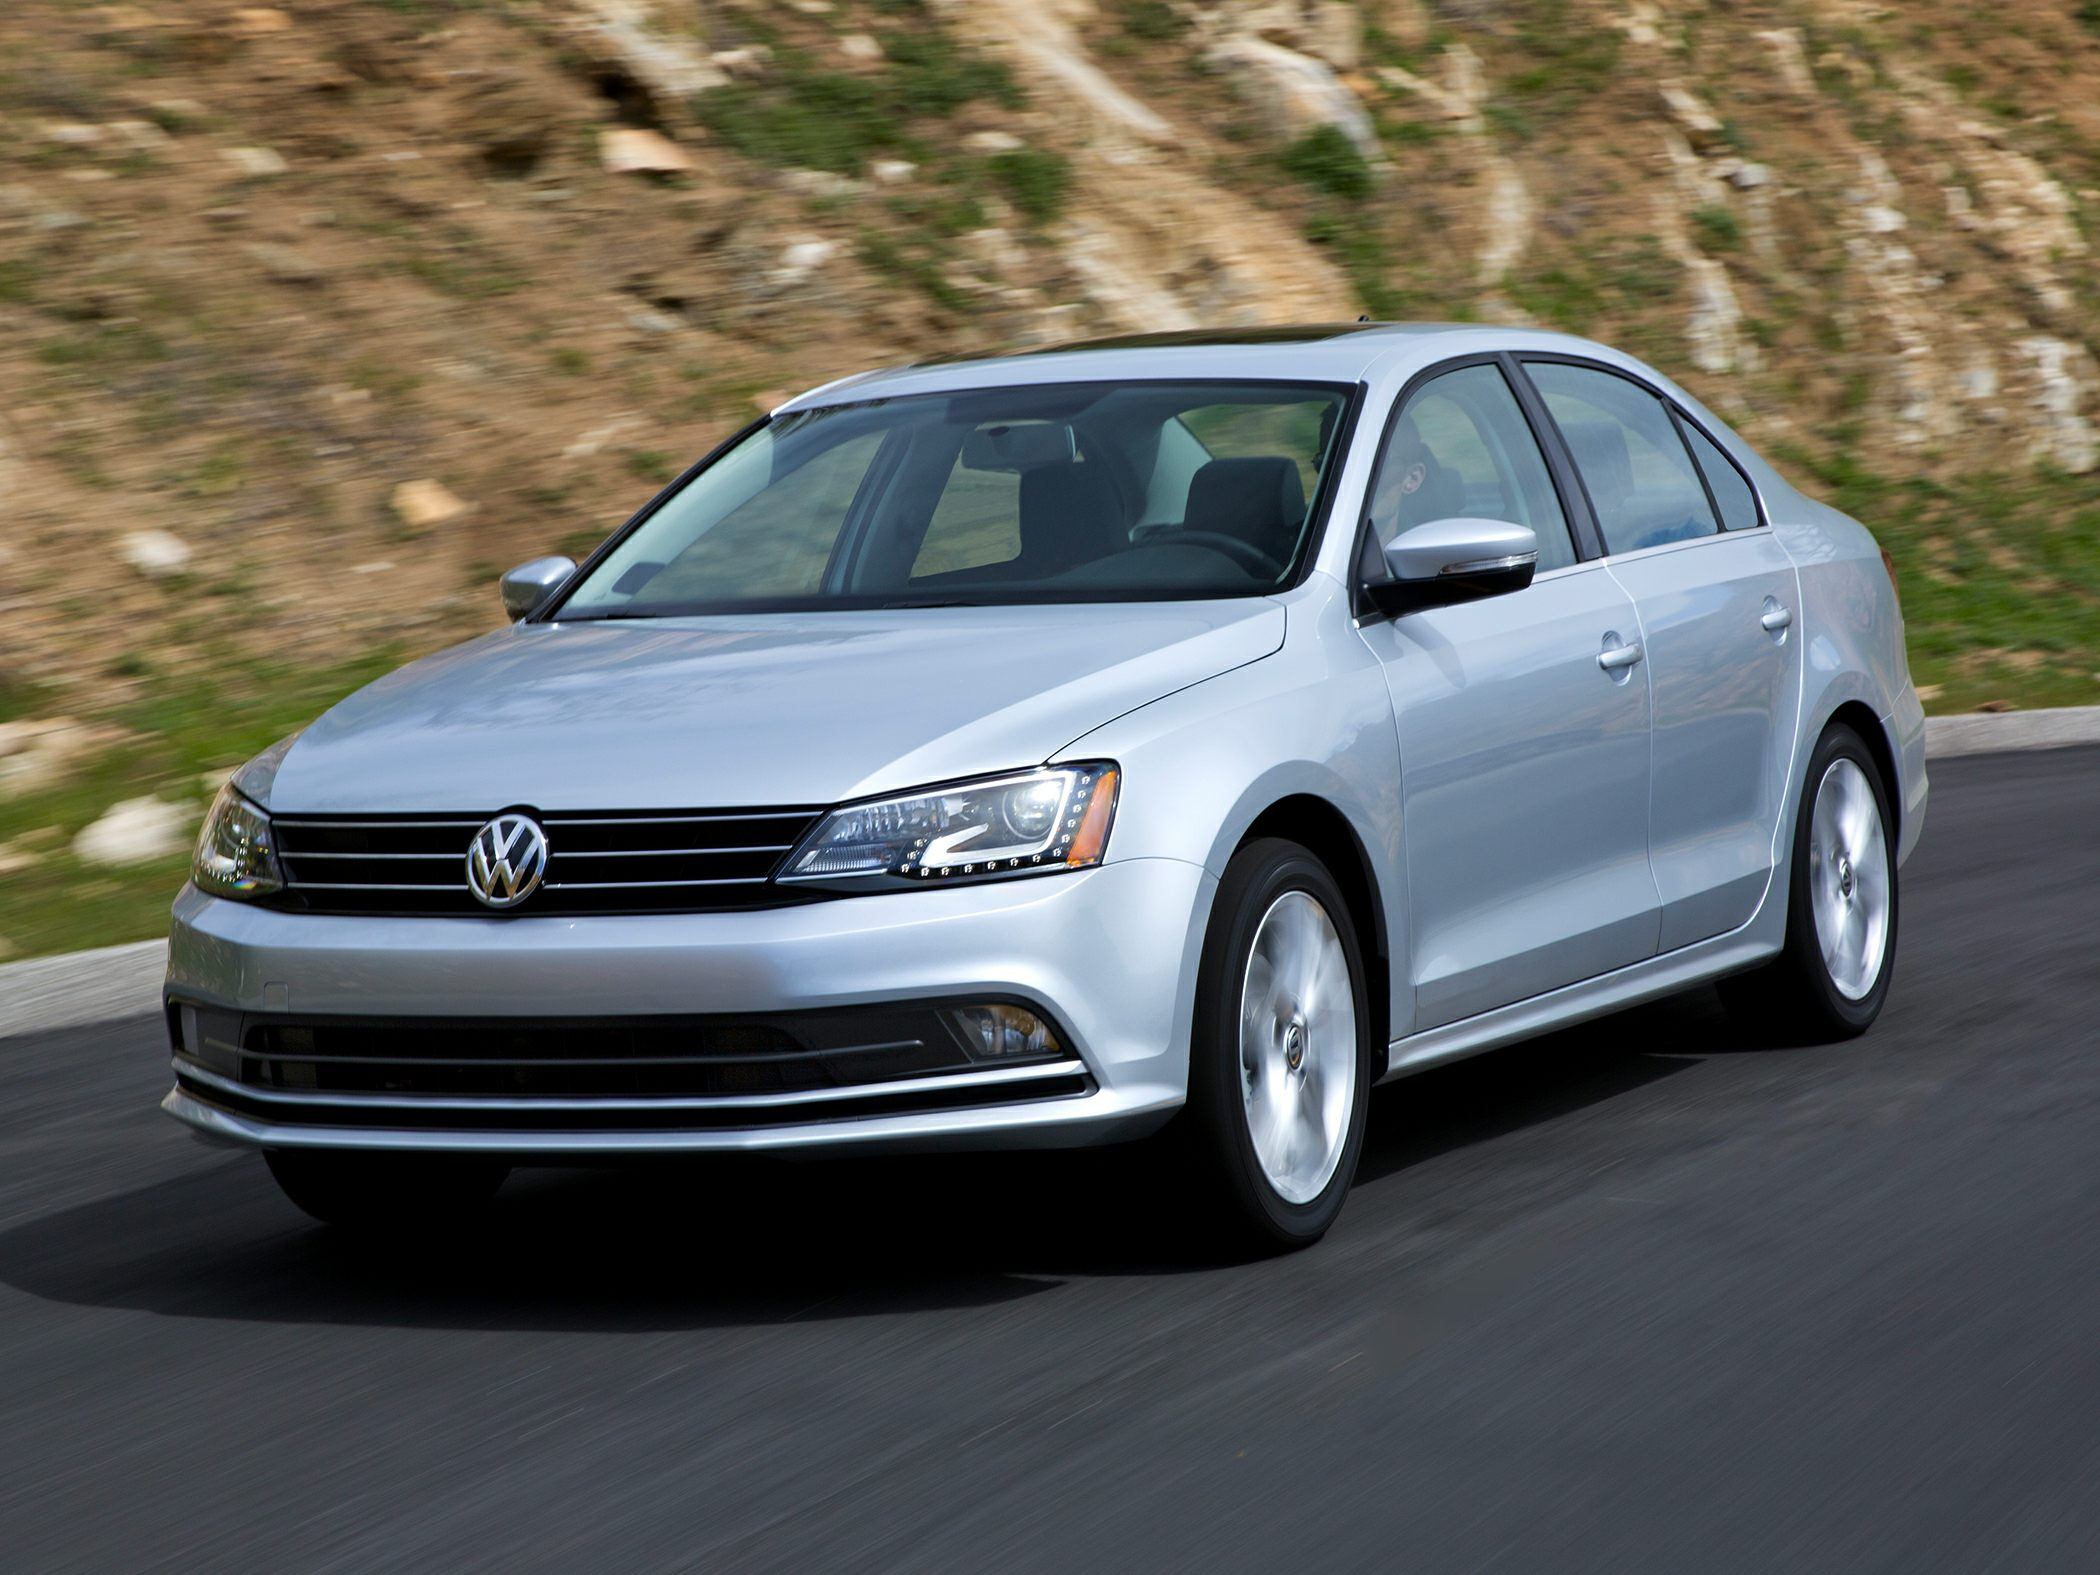 New 2018 Volkswagen Jetta Price Photos Reviews Safety